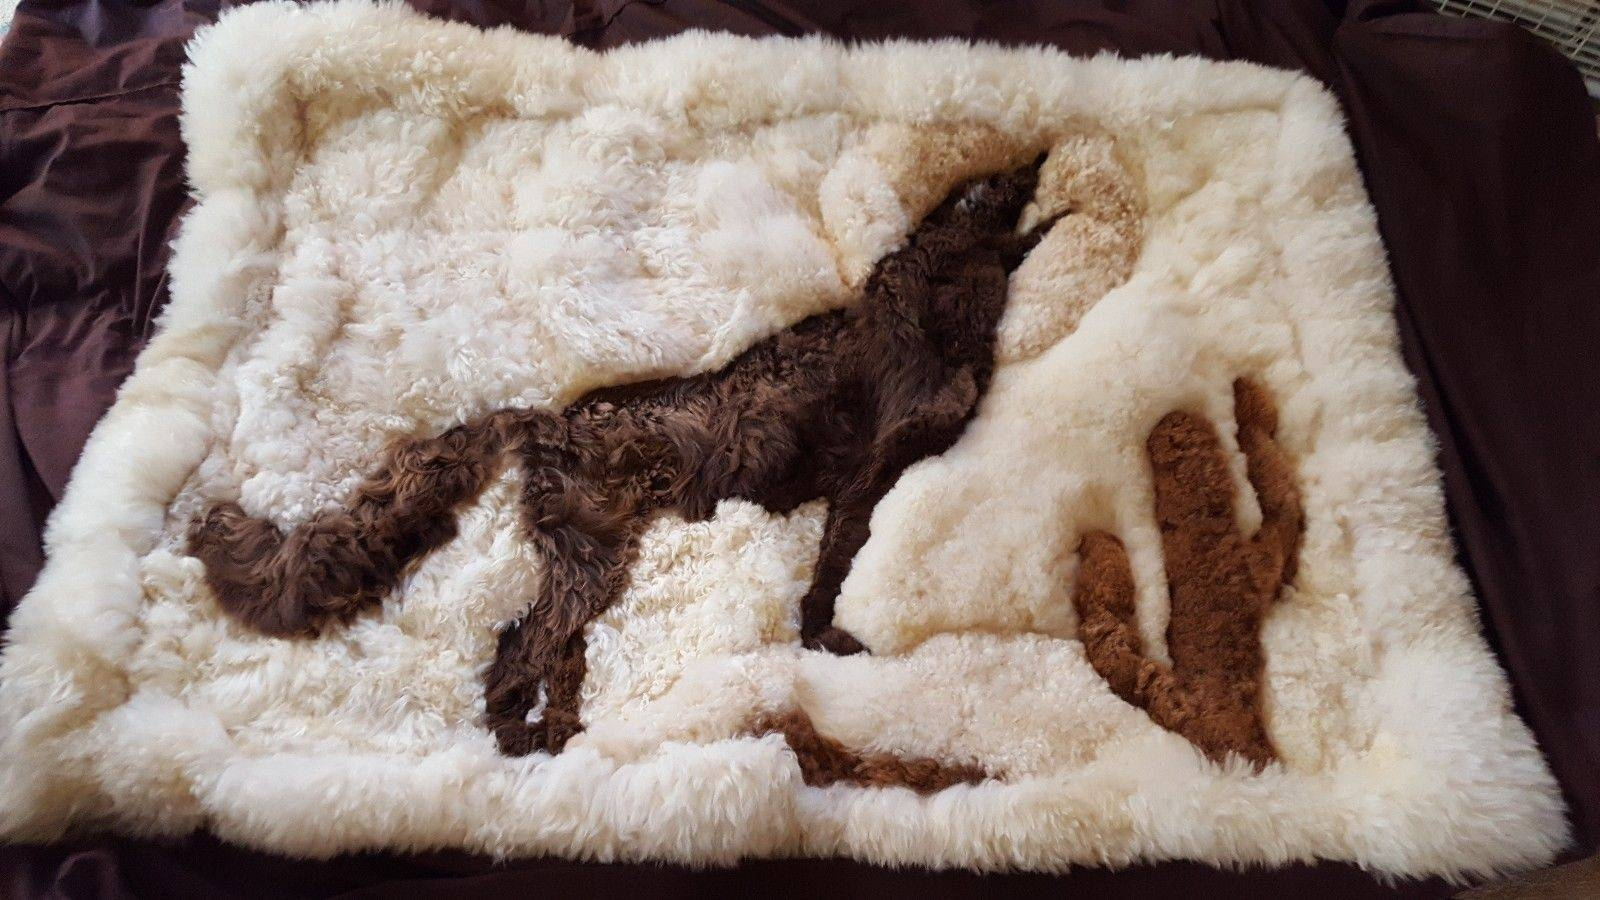 Handmade Peruvian Alpaca Fur Rug Wall Art Howling Coyote Wolf Full Intended For Most Up To Date Peruvian Wall Art (View 14 of 30)